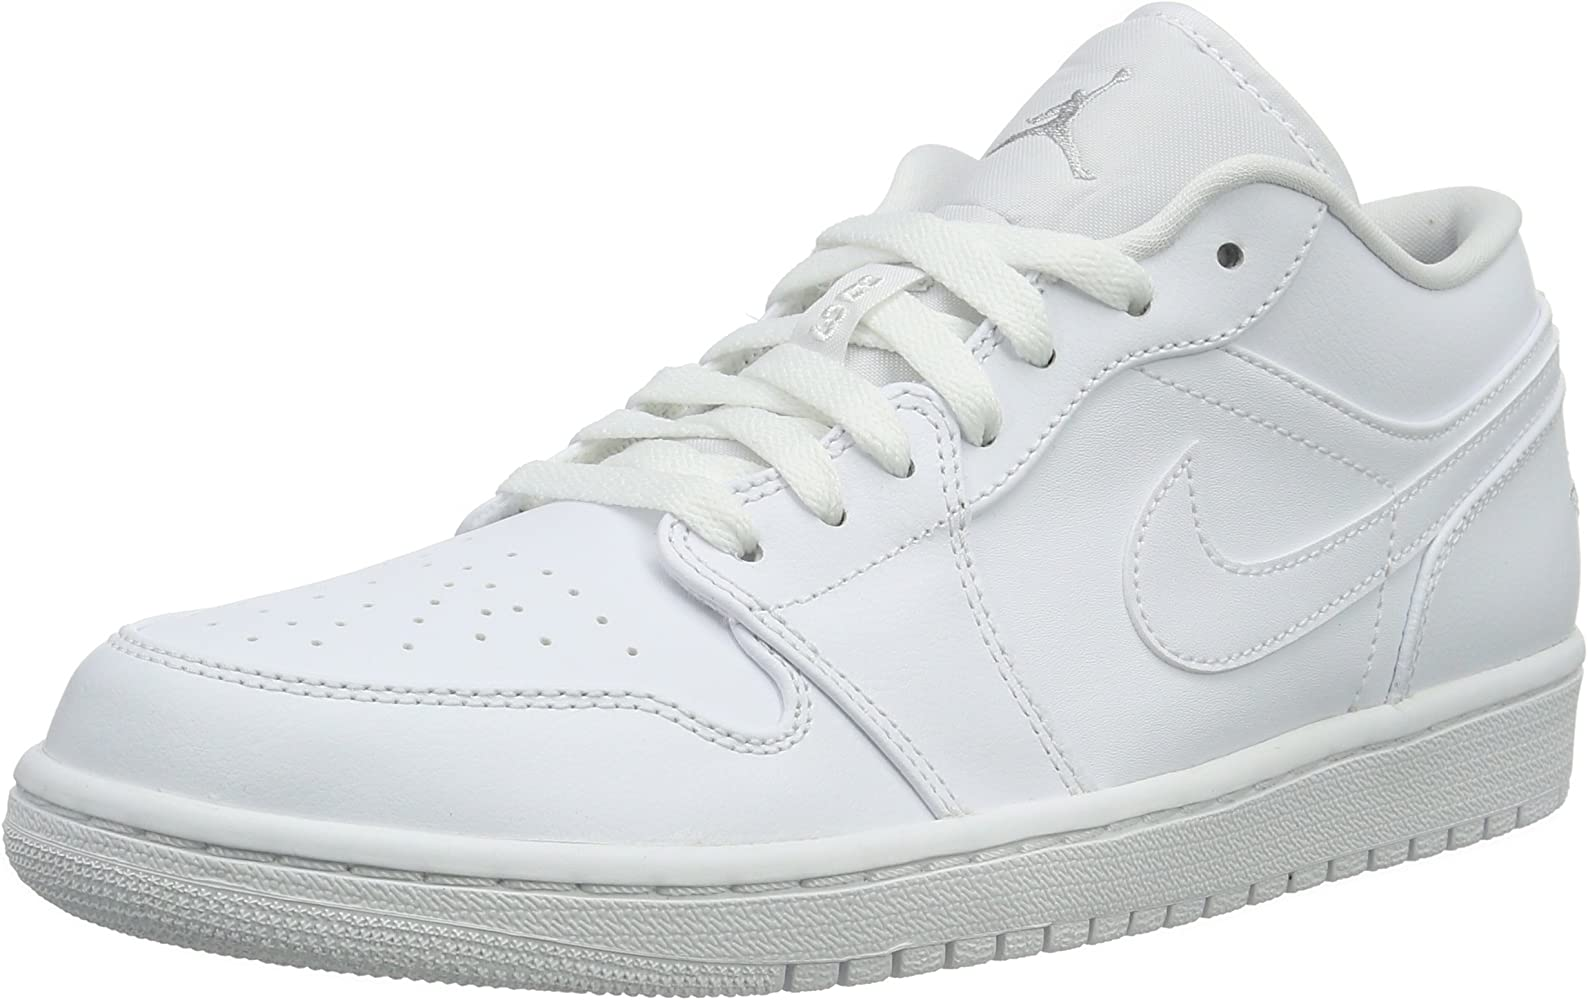 plus récent ed2c3 e5548 Air Jordan 1 Low, Baskets Basses Homme